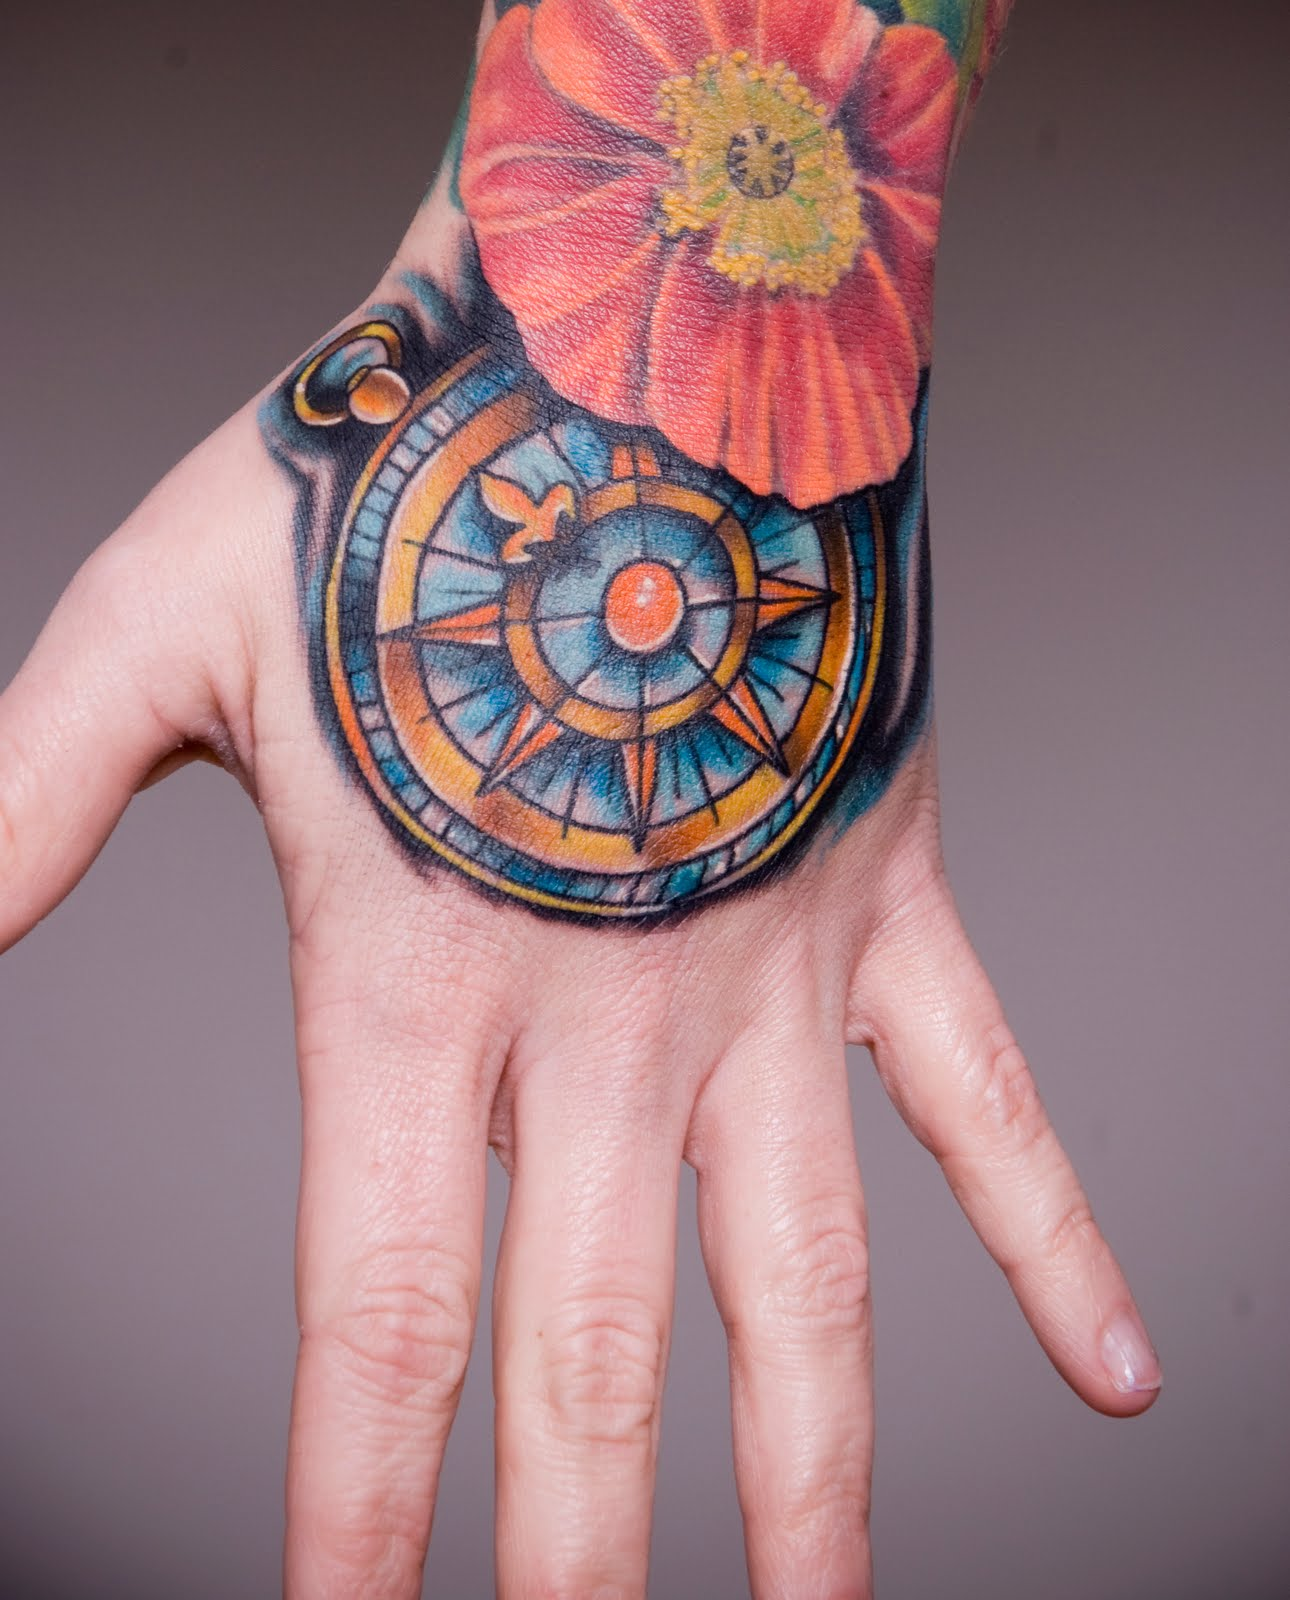 Tattoo Designs For Girls On Hand: 30 Fantastic Hand Tattoo Designs Collection For 2011 Best